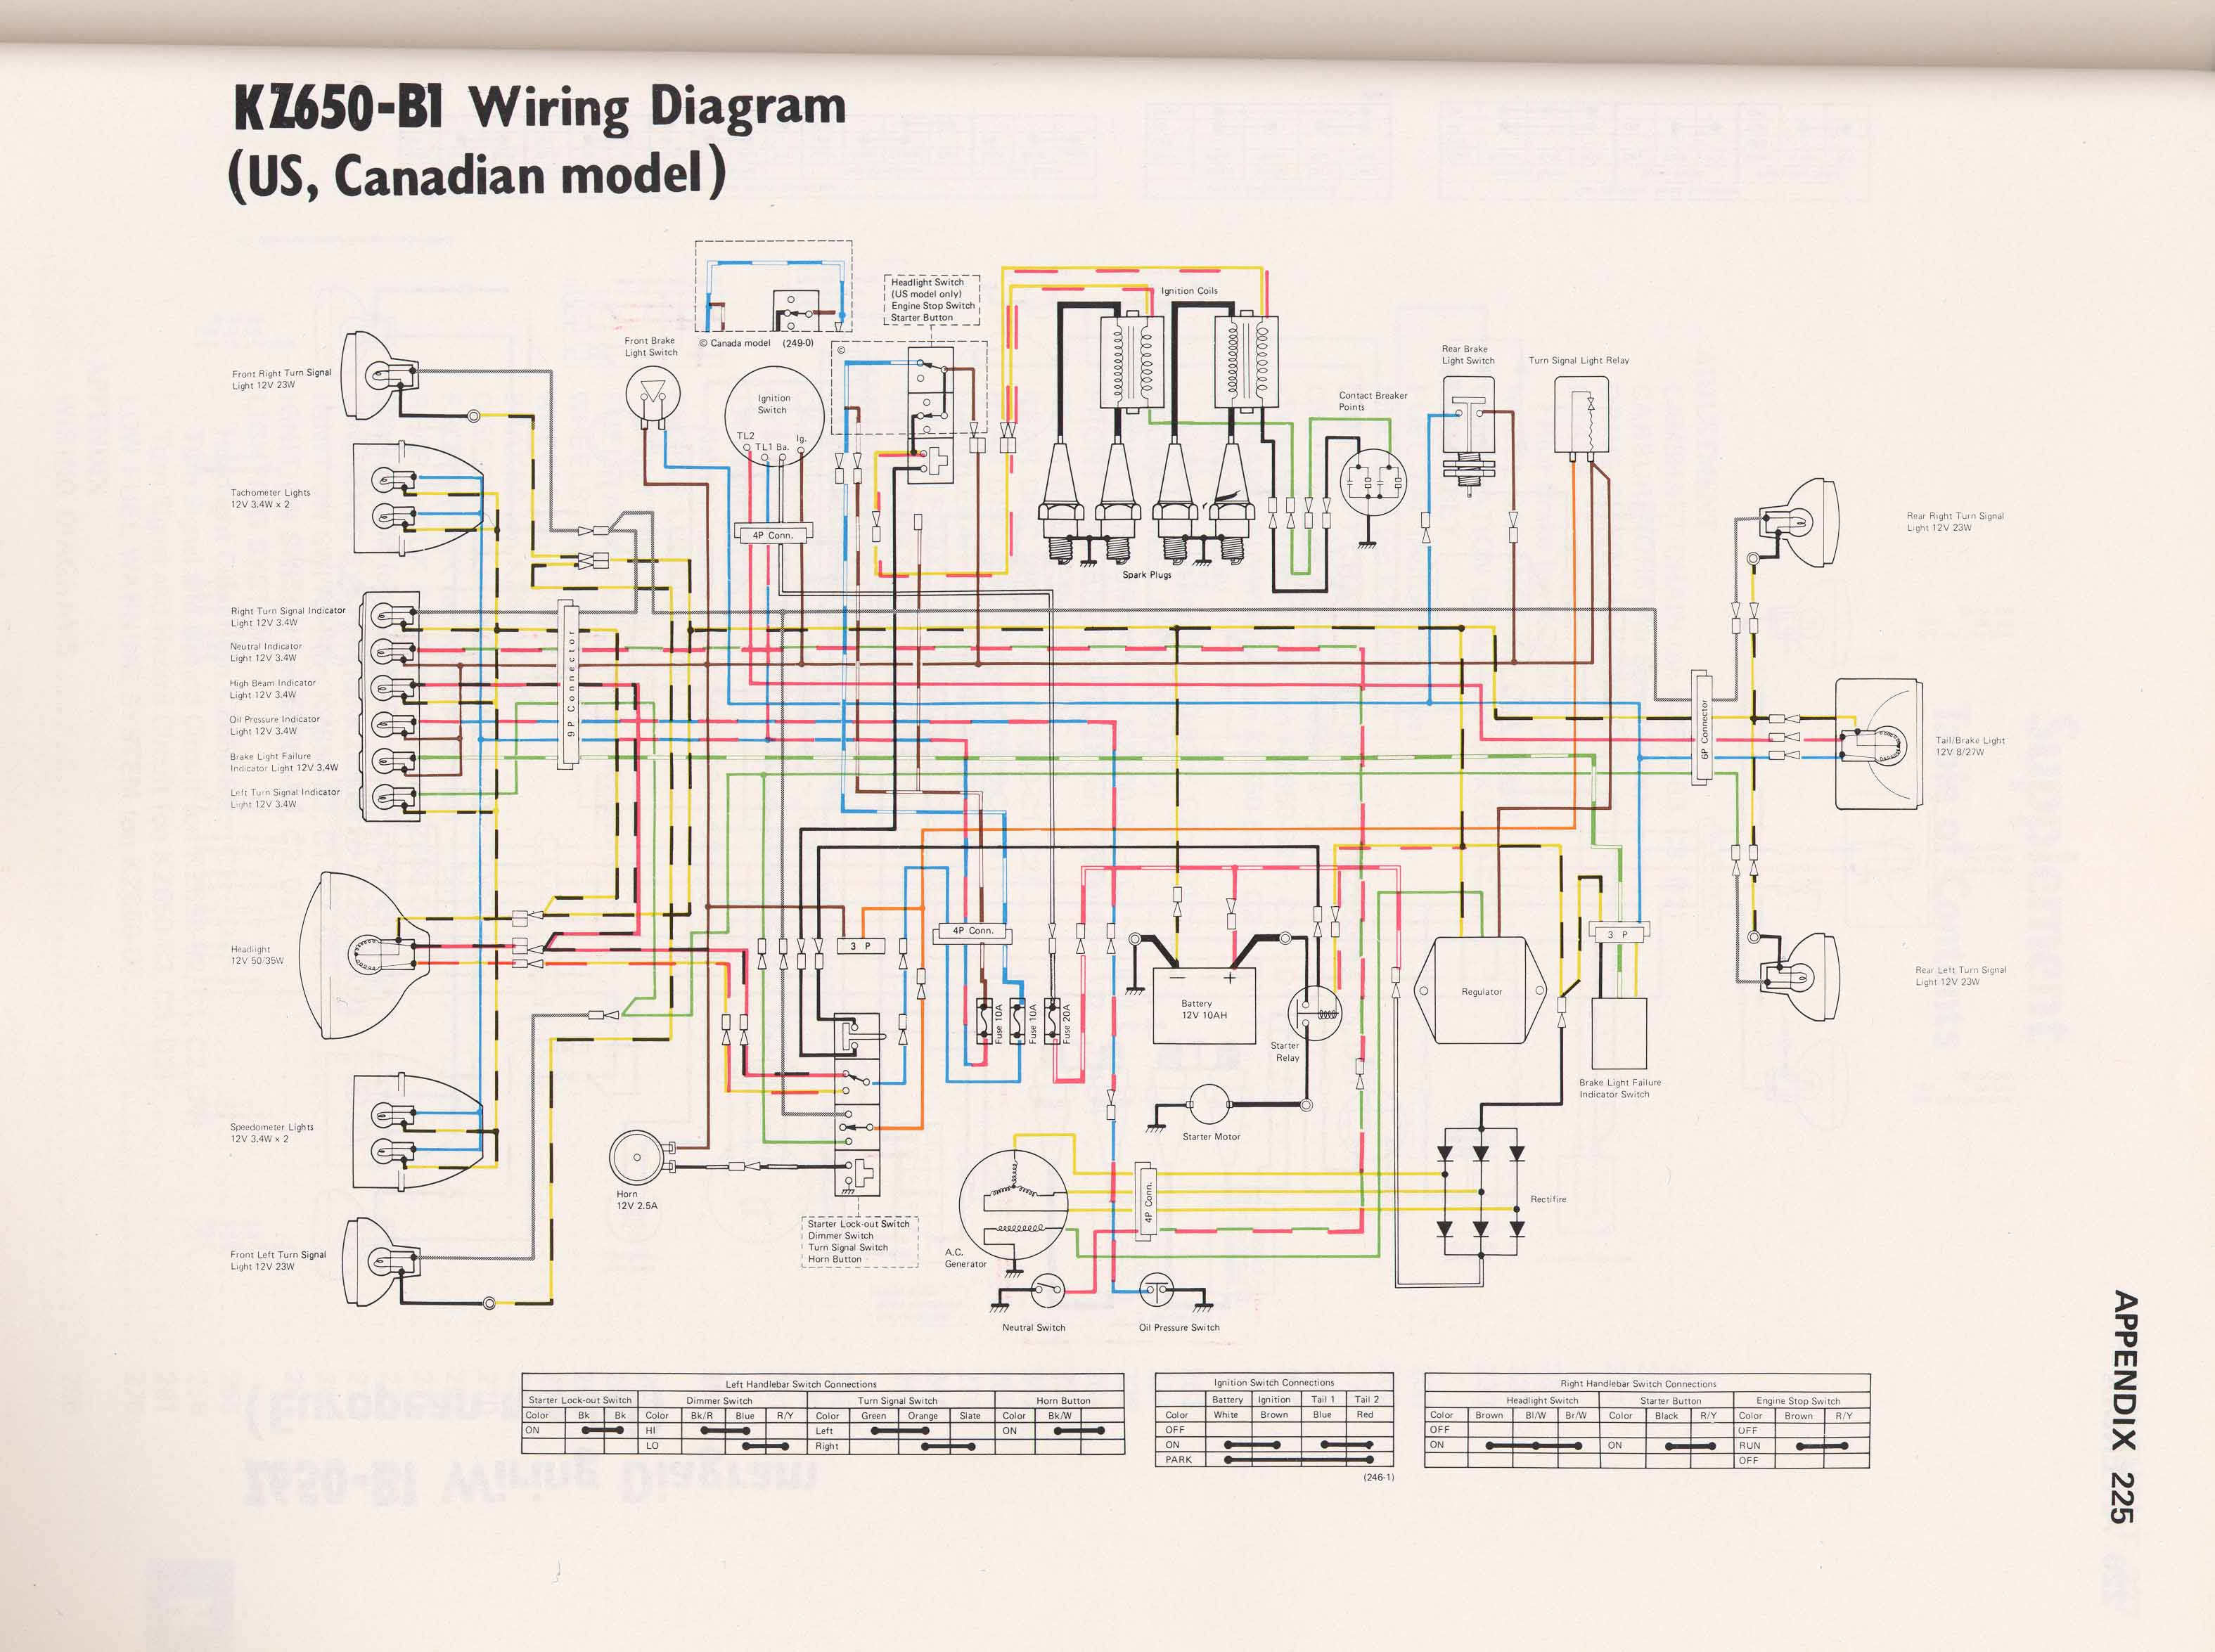 78 Kz650 Wiring Diagram Best Library 1980 Club Car Diagrams